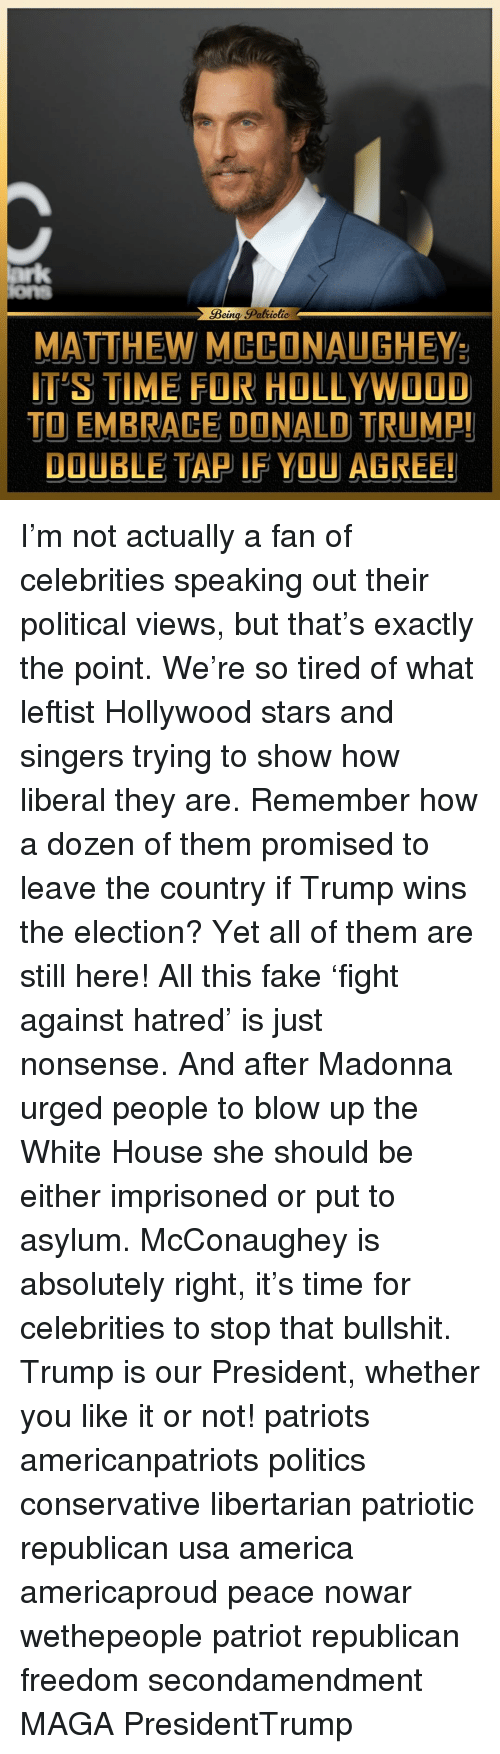 Trump Winning: Being Spaltiotic  MATTHEW  MCCONAUGHEY  ITS TIME FOR HOLLYWOOD  TO EMBRACE DONALD TRUMP!  DOUBLE TAP IF YOU  AGREE! I'm not actually a fan of celebrities speaking out their political views, but that's exactly the point. We're so tired of what leftist Hollywood stars and singers trying to show how liberal they are. Remember how a dozen of them promised to leave the country if Trump wins the election? Yet all of them are still here! All this fake 'fight against hatred' is just nonsense. And after Madonna urged people to blow up the White House she should be either imprisoned or put to asylum. McConaughey is absolutely right, it's time for celebrities to stop that bullshit. Trump is our President, whether you like it or not! patriots americanpatriots politics conservative libertarian patriotic republican usa america americaproud peace nowar wethepeople patriot republican freedom secondamendment MAGA PresidentTrump